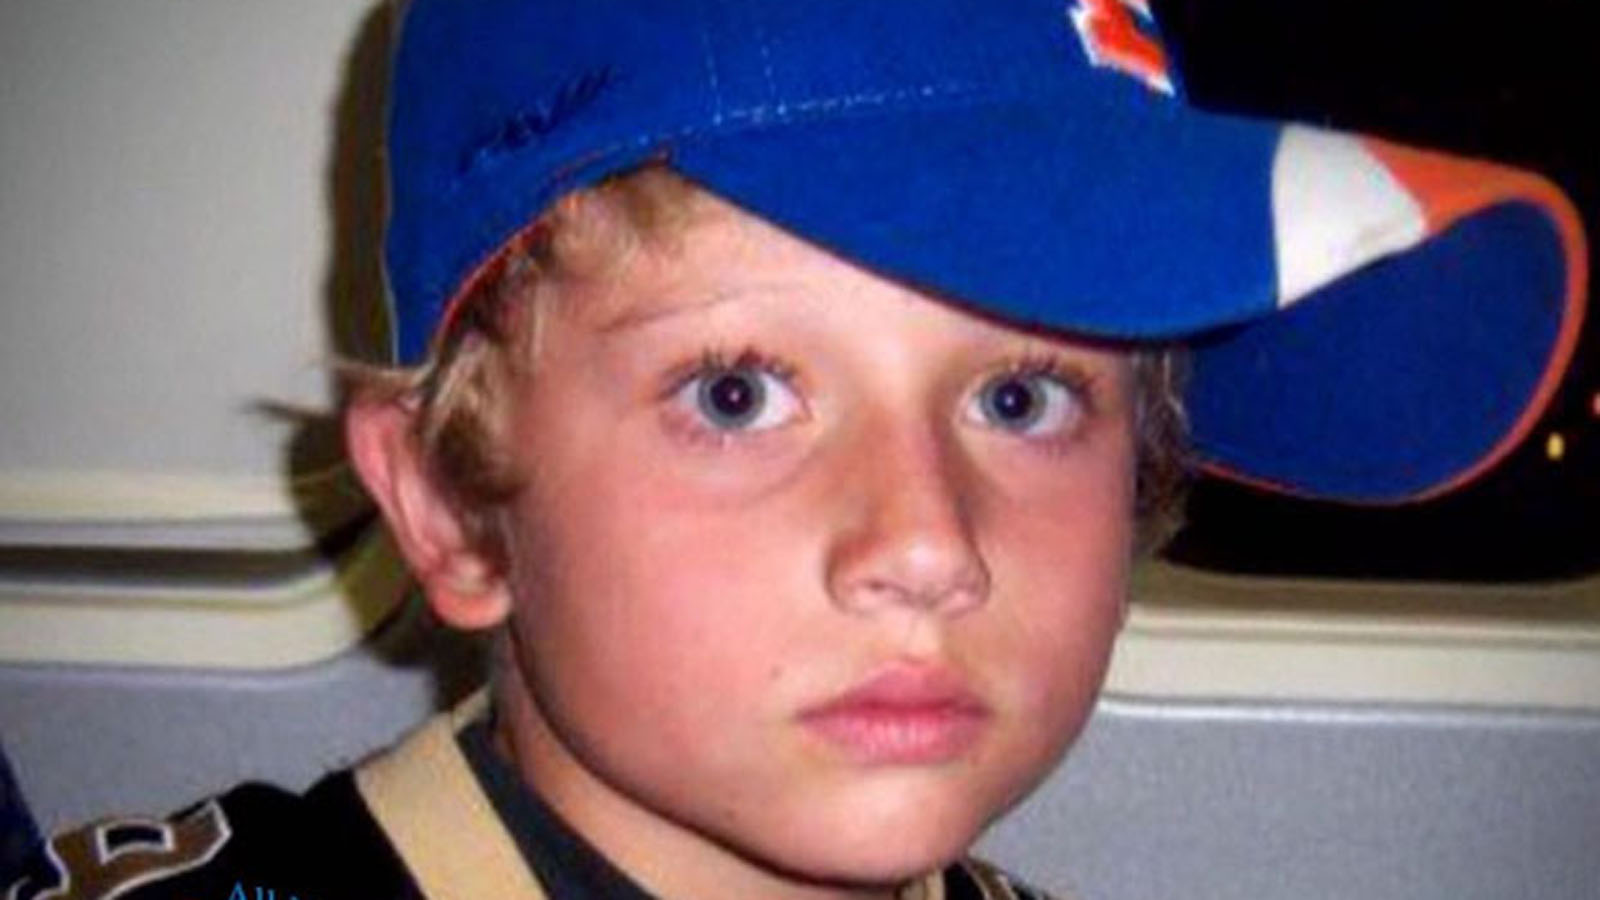 Dylan Redwine (credit: The Dr. Phil Show)